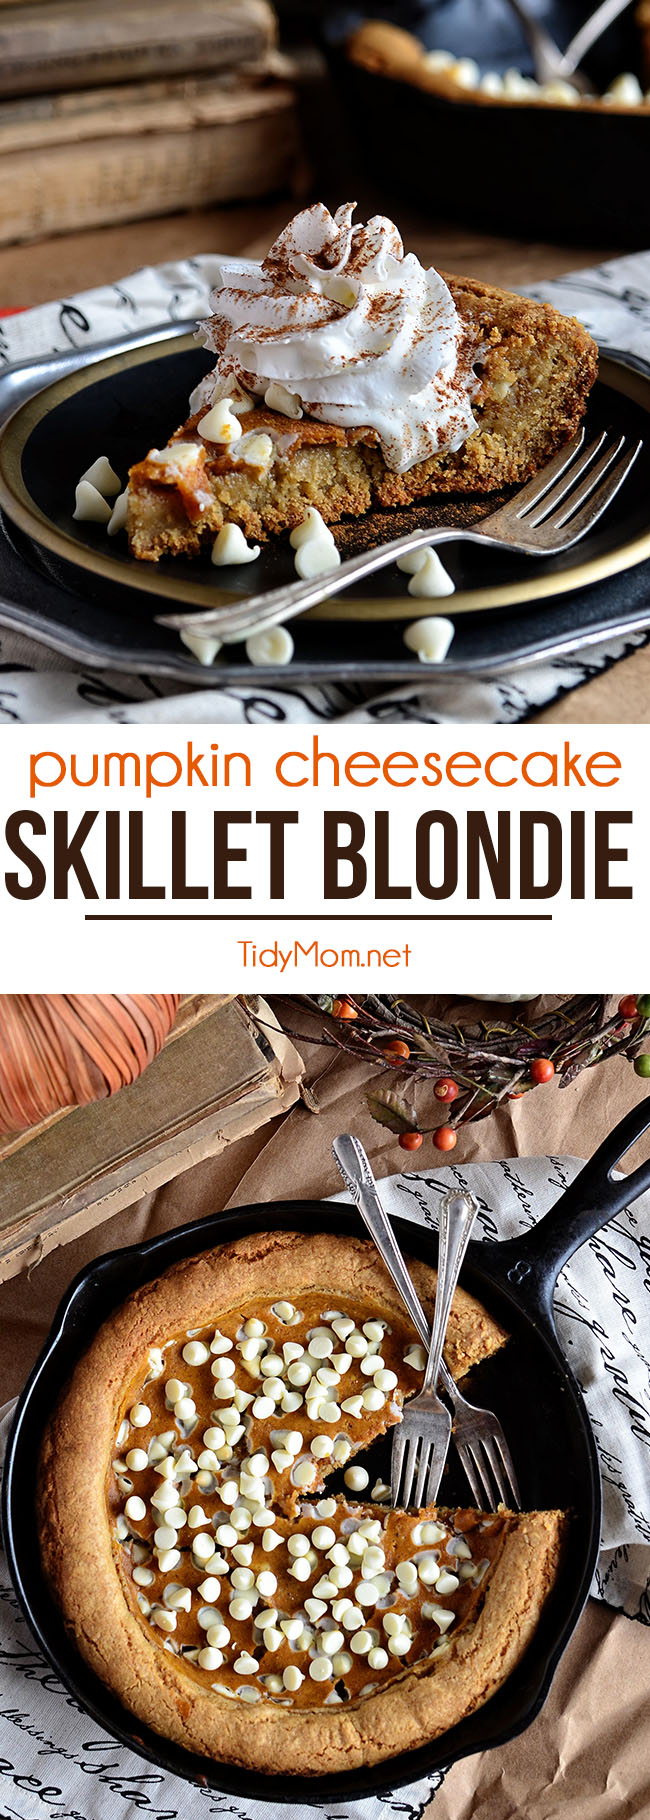 Take the great taste of pumpkin pie and give it an upgrade. Pumpkin Cheesecake Skillet Blondie is a trifecta of flavors all in one decadent dessert, a first-class ticket to pumpkin heaven. Print the full recipe at TidyMom.net